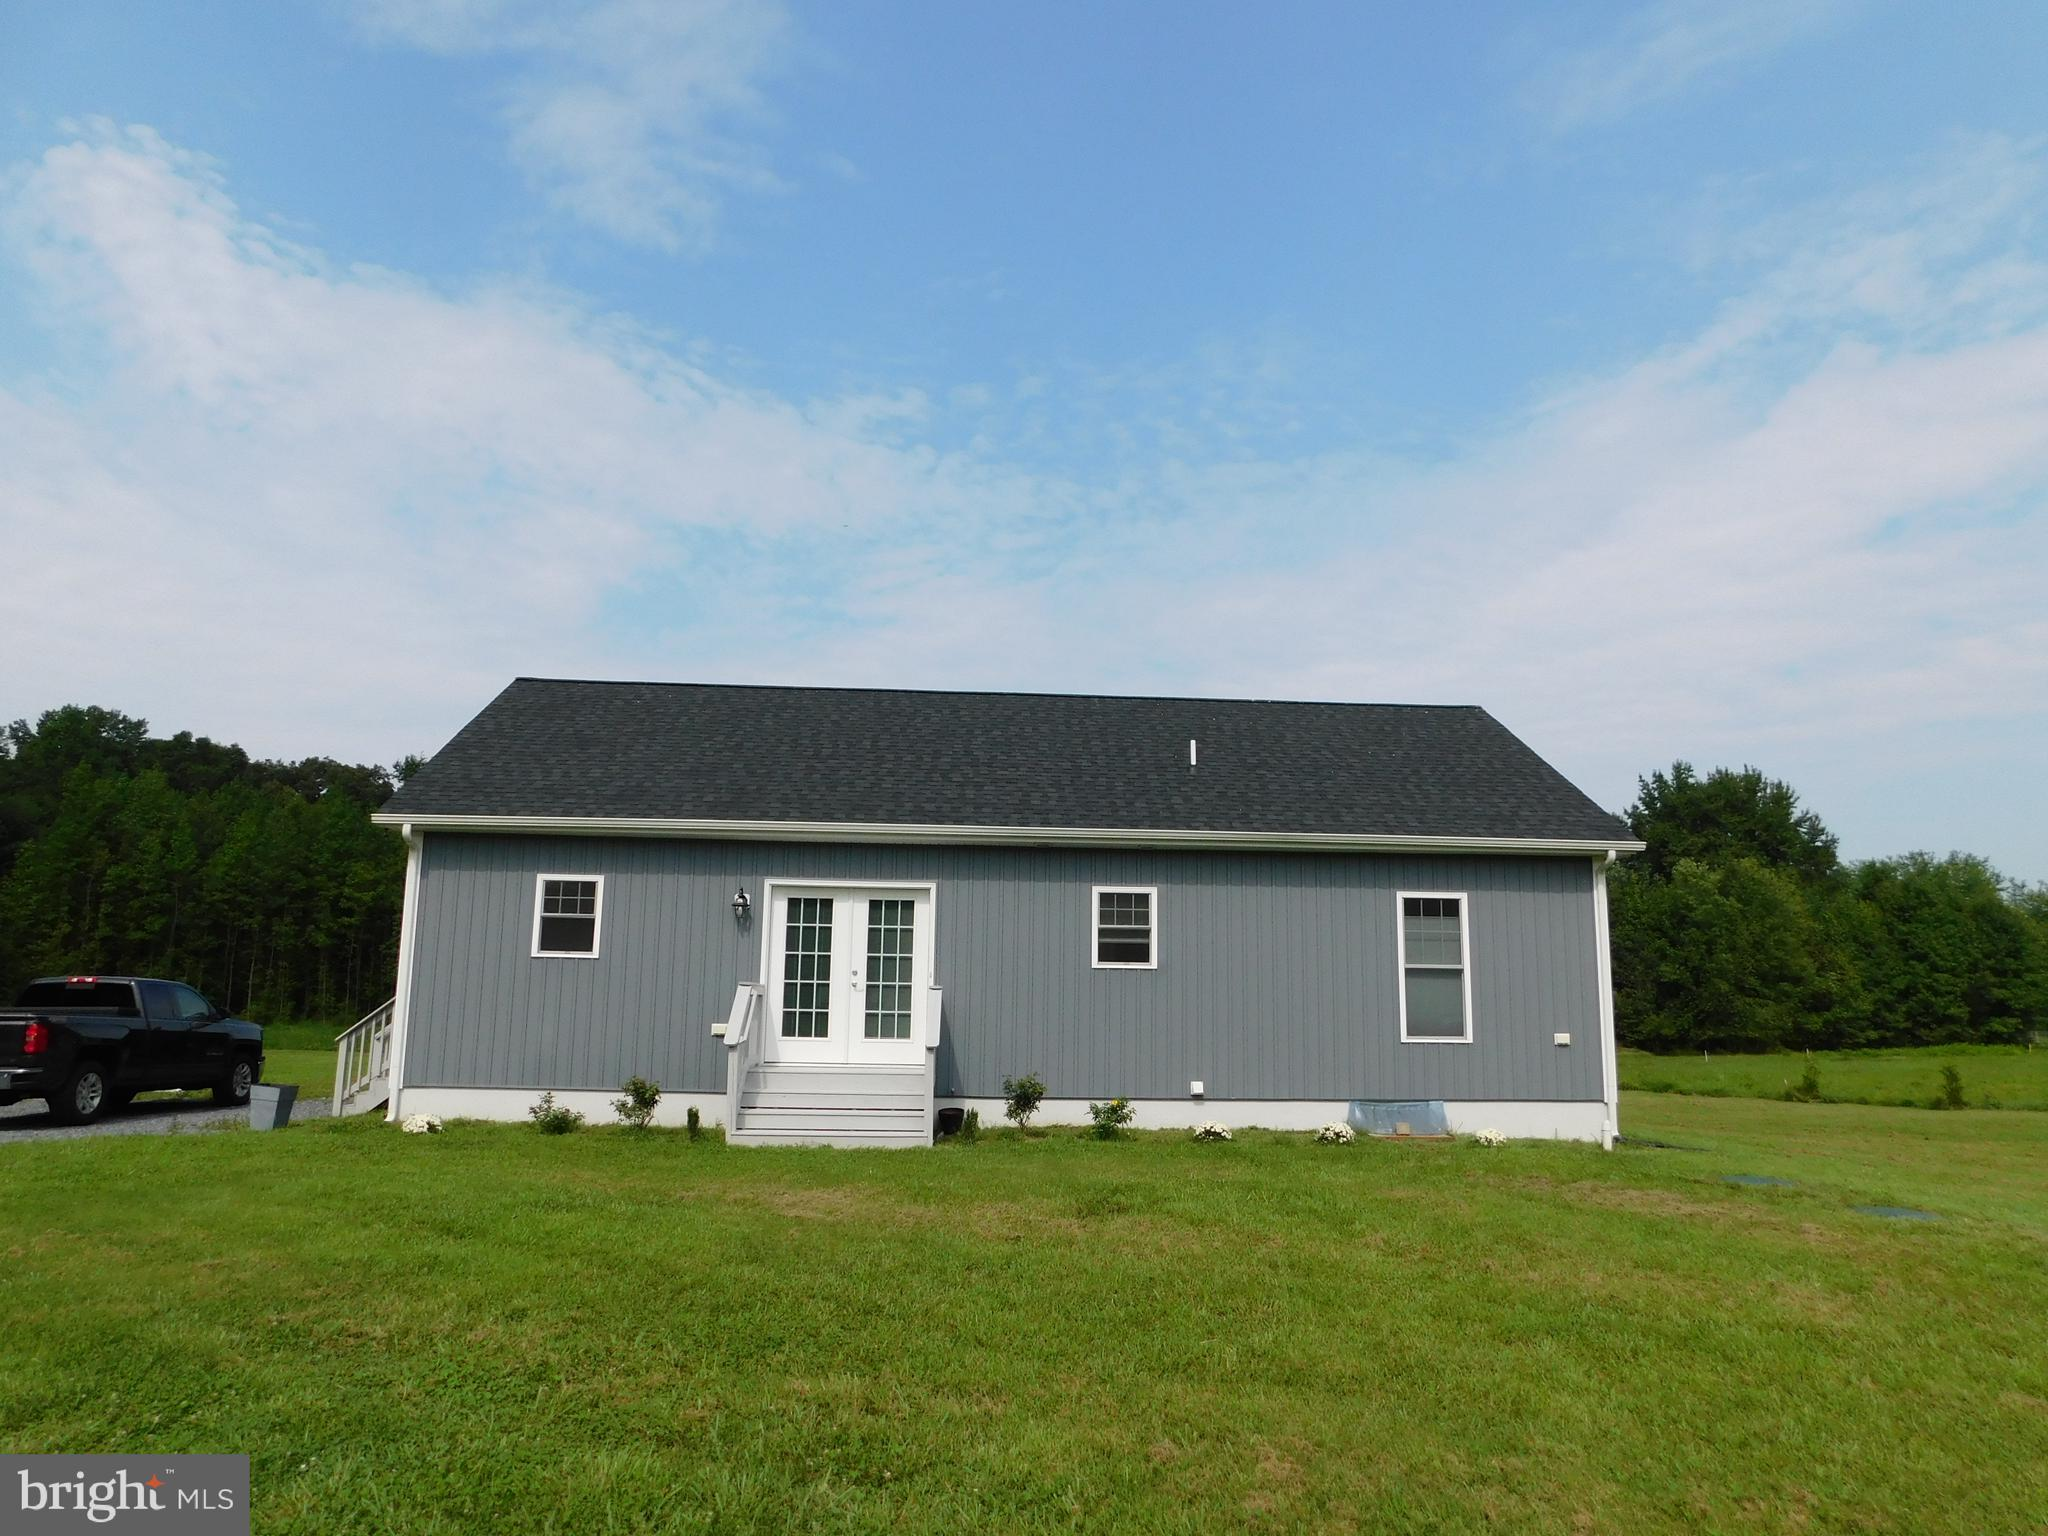 Almost New!  Amish stick-built in 2019, this beautiful 3 BR/2 BA ranch is on a huge piece of land!  Private 3.45 acres complete with your very own fishing pond.  Imagine having the space to play, fish and ride ATV's!  Camp in your own back yard.  The secluded custom ranch has a spacious open living area and the kitchen offers stainless steel appliances.  It also boasts a cement covered porch which overlooks a spectacular fall foliage display. Relax and enjoy your morning coffee while listening to the birds singing.  The home is energy efficient and virtually maintenance free with its upgraded board and batten siding and cost saving cellular shades. Located along the scenic Amish Bike Tour route, this home offers a unique opportunity to experience the good life!  Hurry, it won't last long.